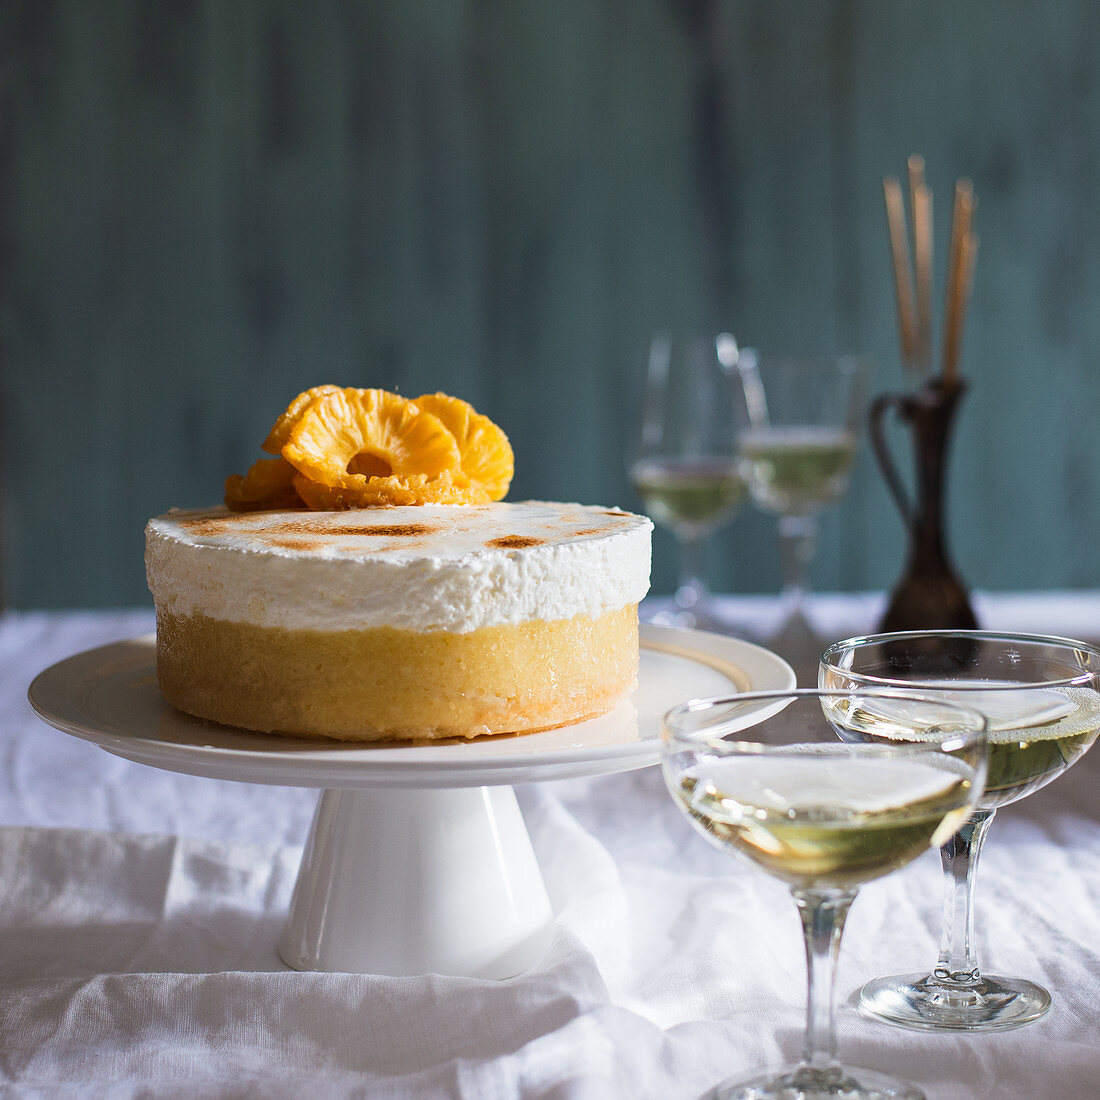 New Year's Eve Pineapple and Prosecco mousse with italian meringue